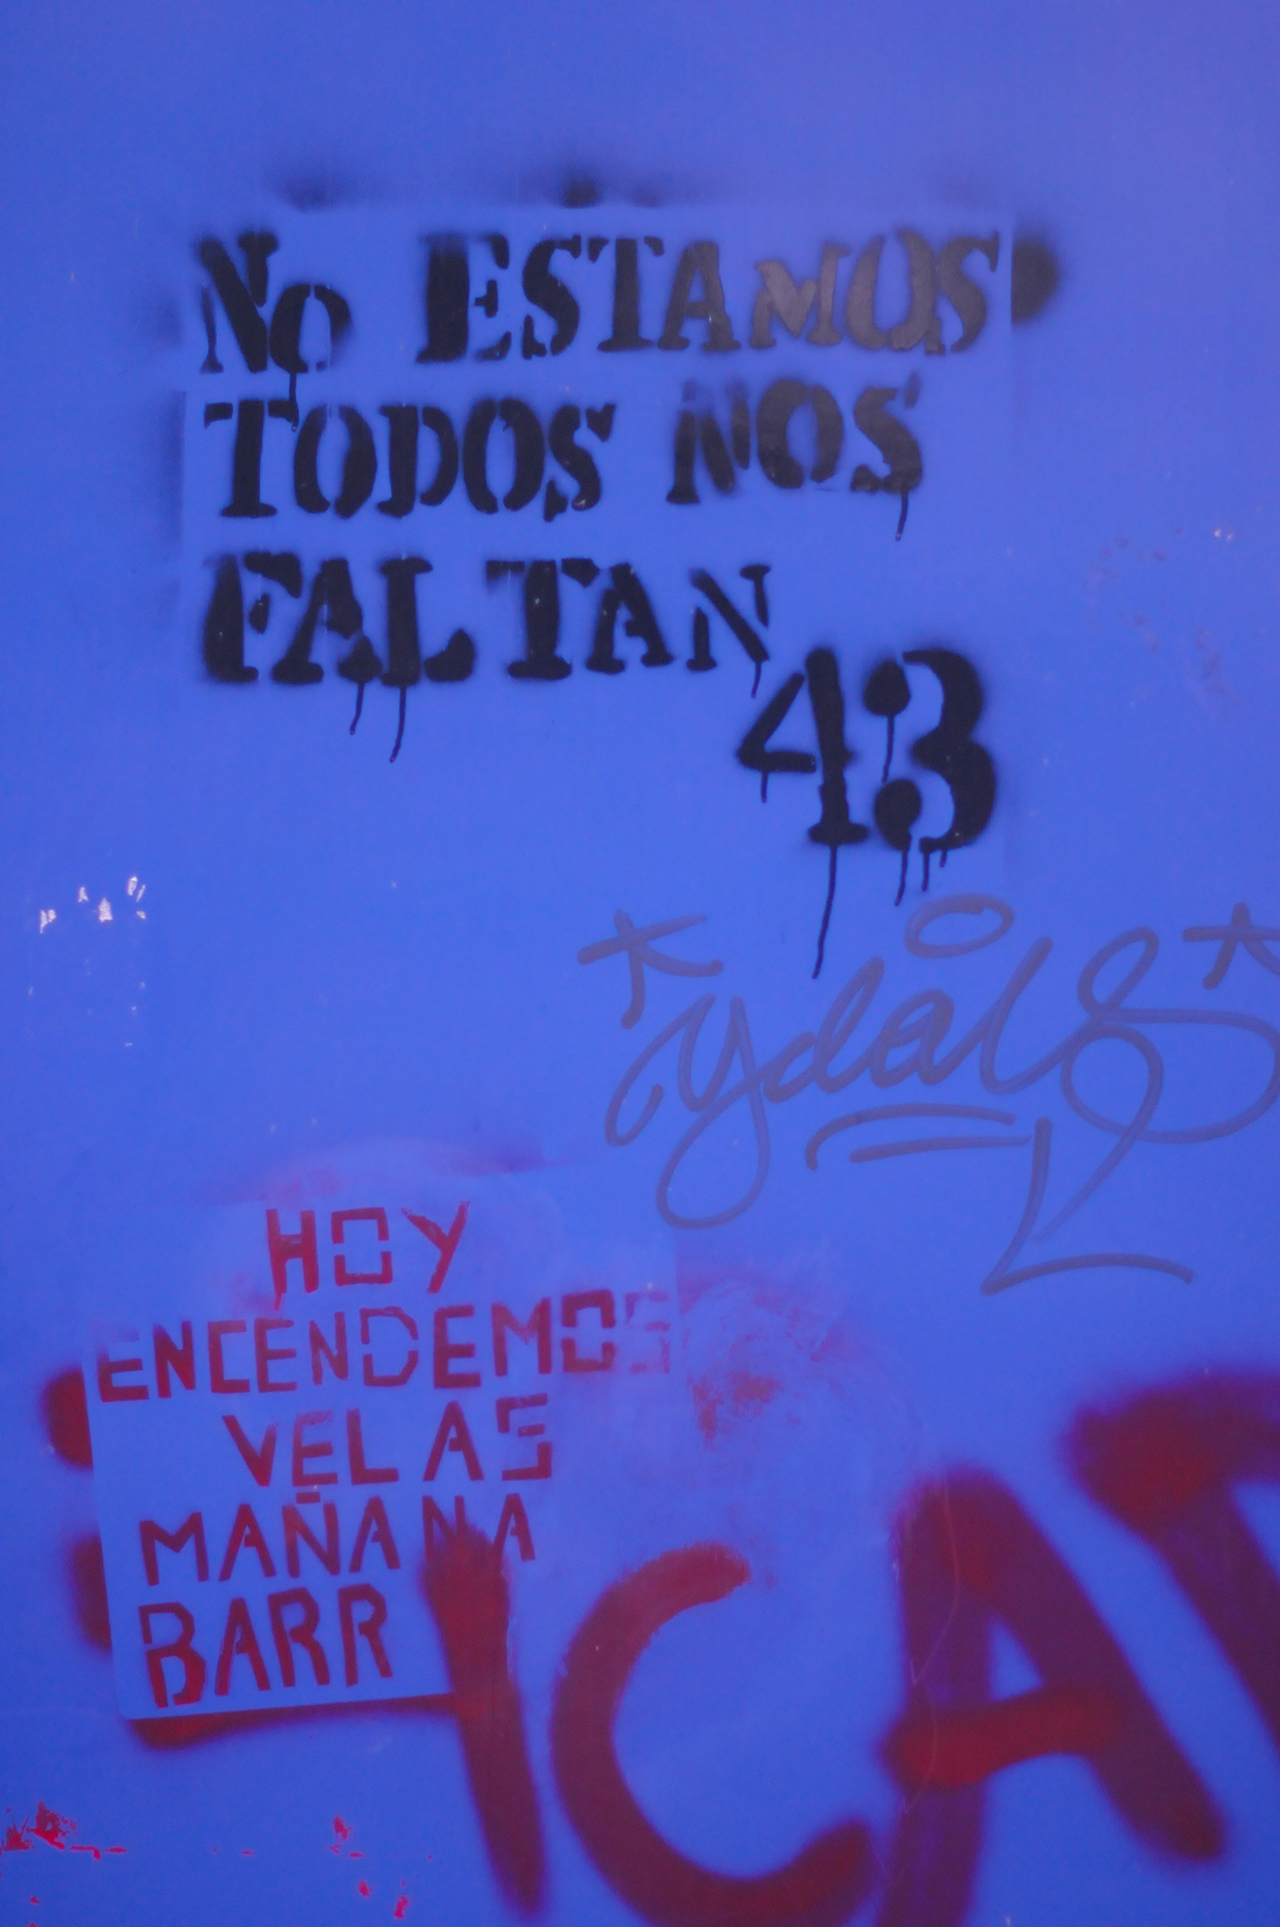 Detail of graffiti on a sculpture by Sebestián at the Museo de Arte Moderno (click to enlarge)